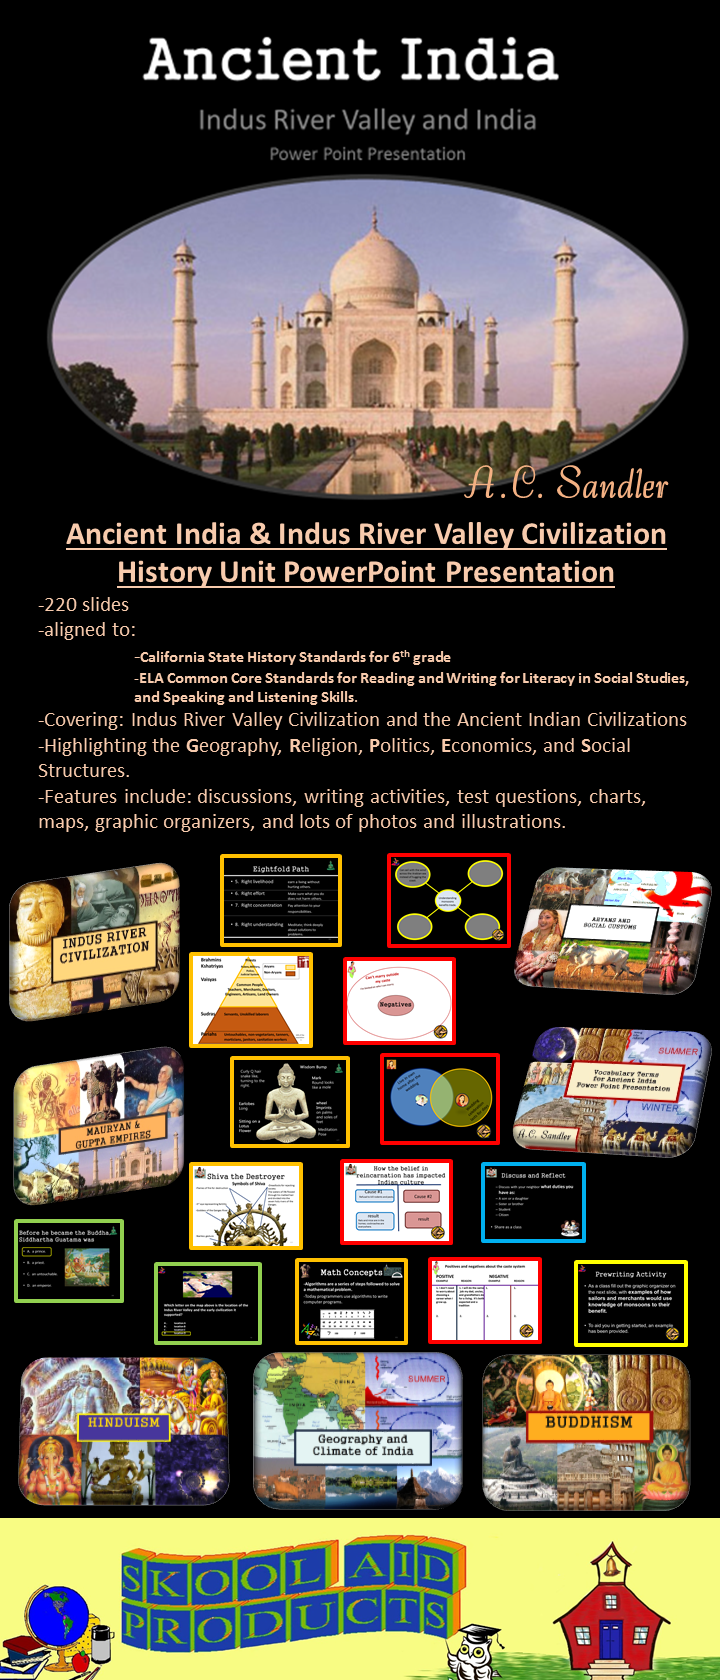 Ancient India & Indus River Valley Teaching Unit